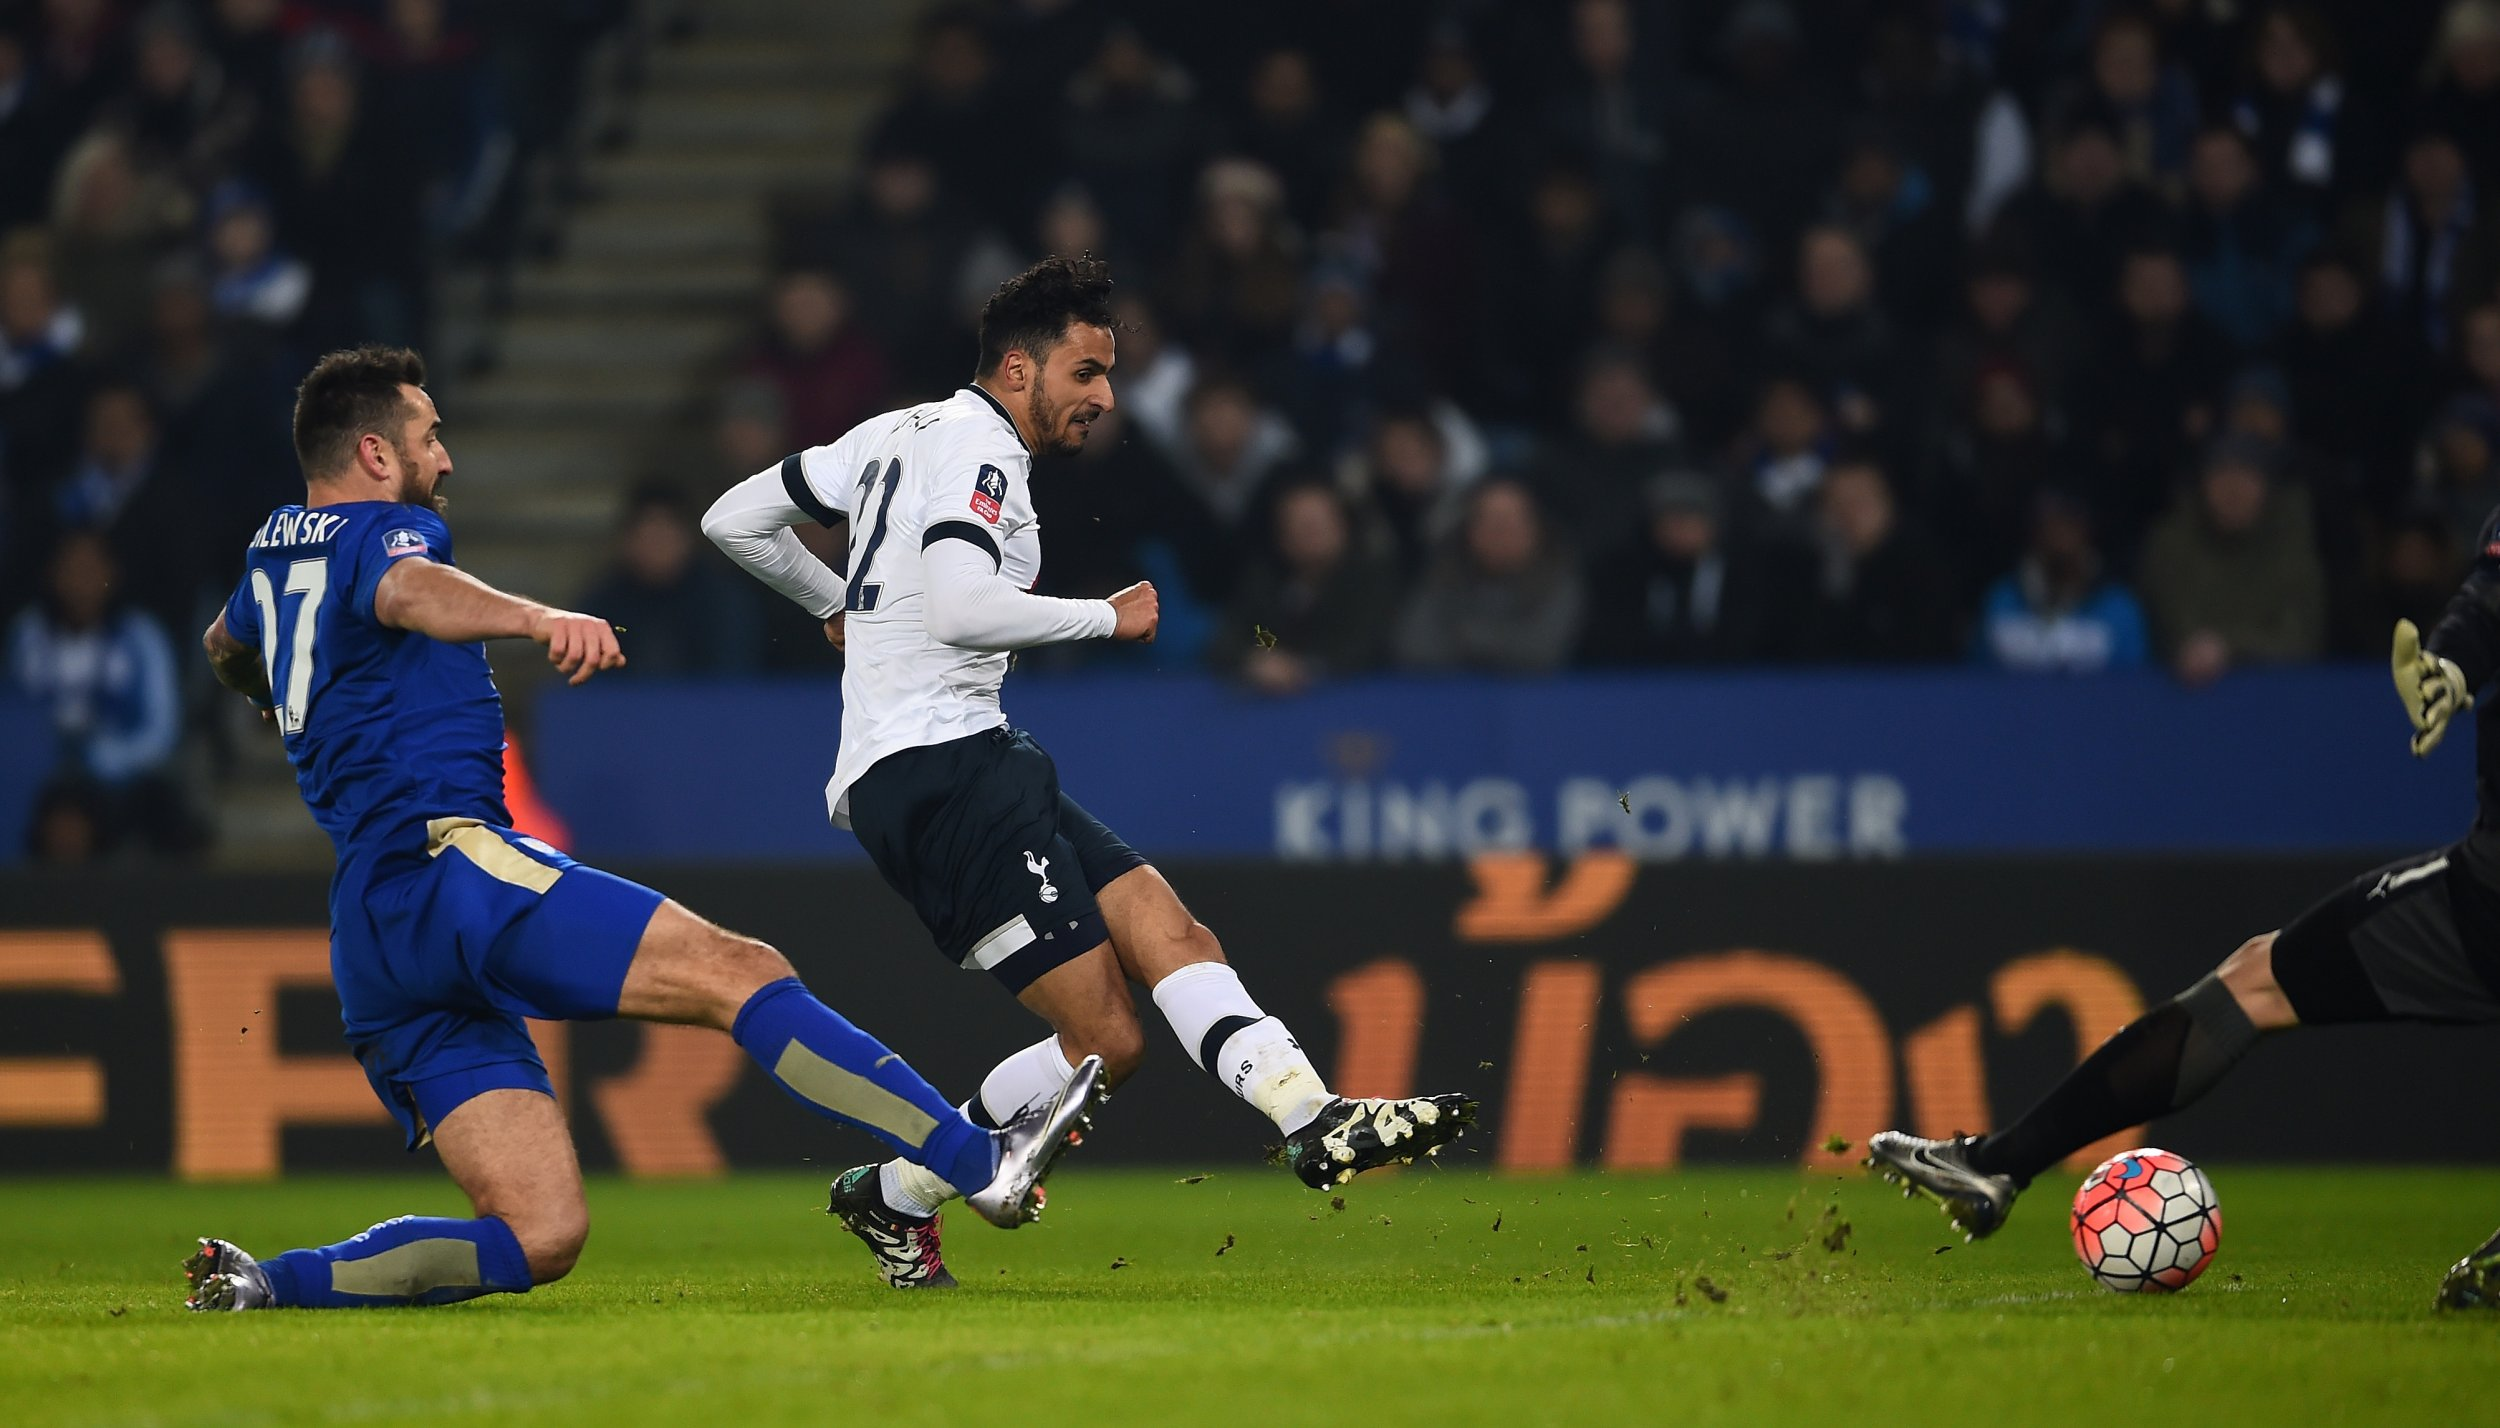 Leicester and Tottenham have gatecrashed the Premier League's established order.